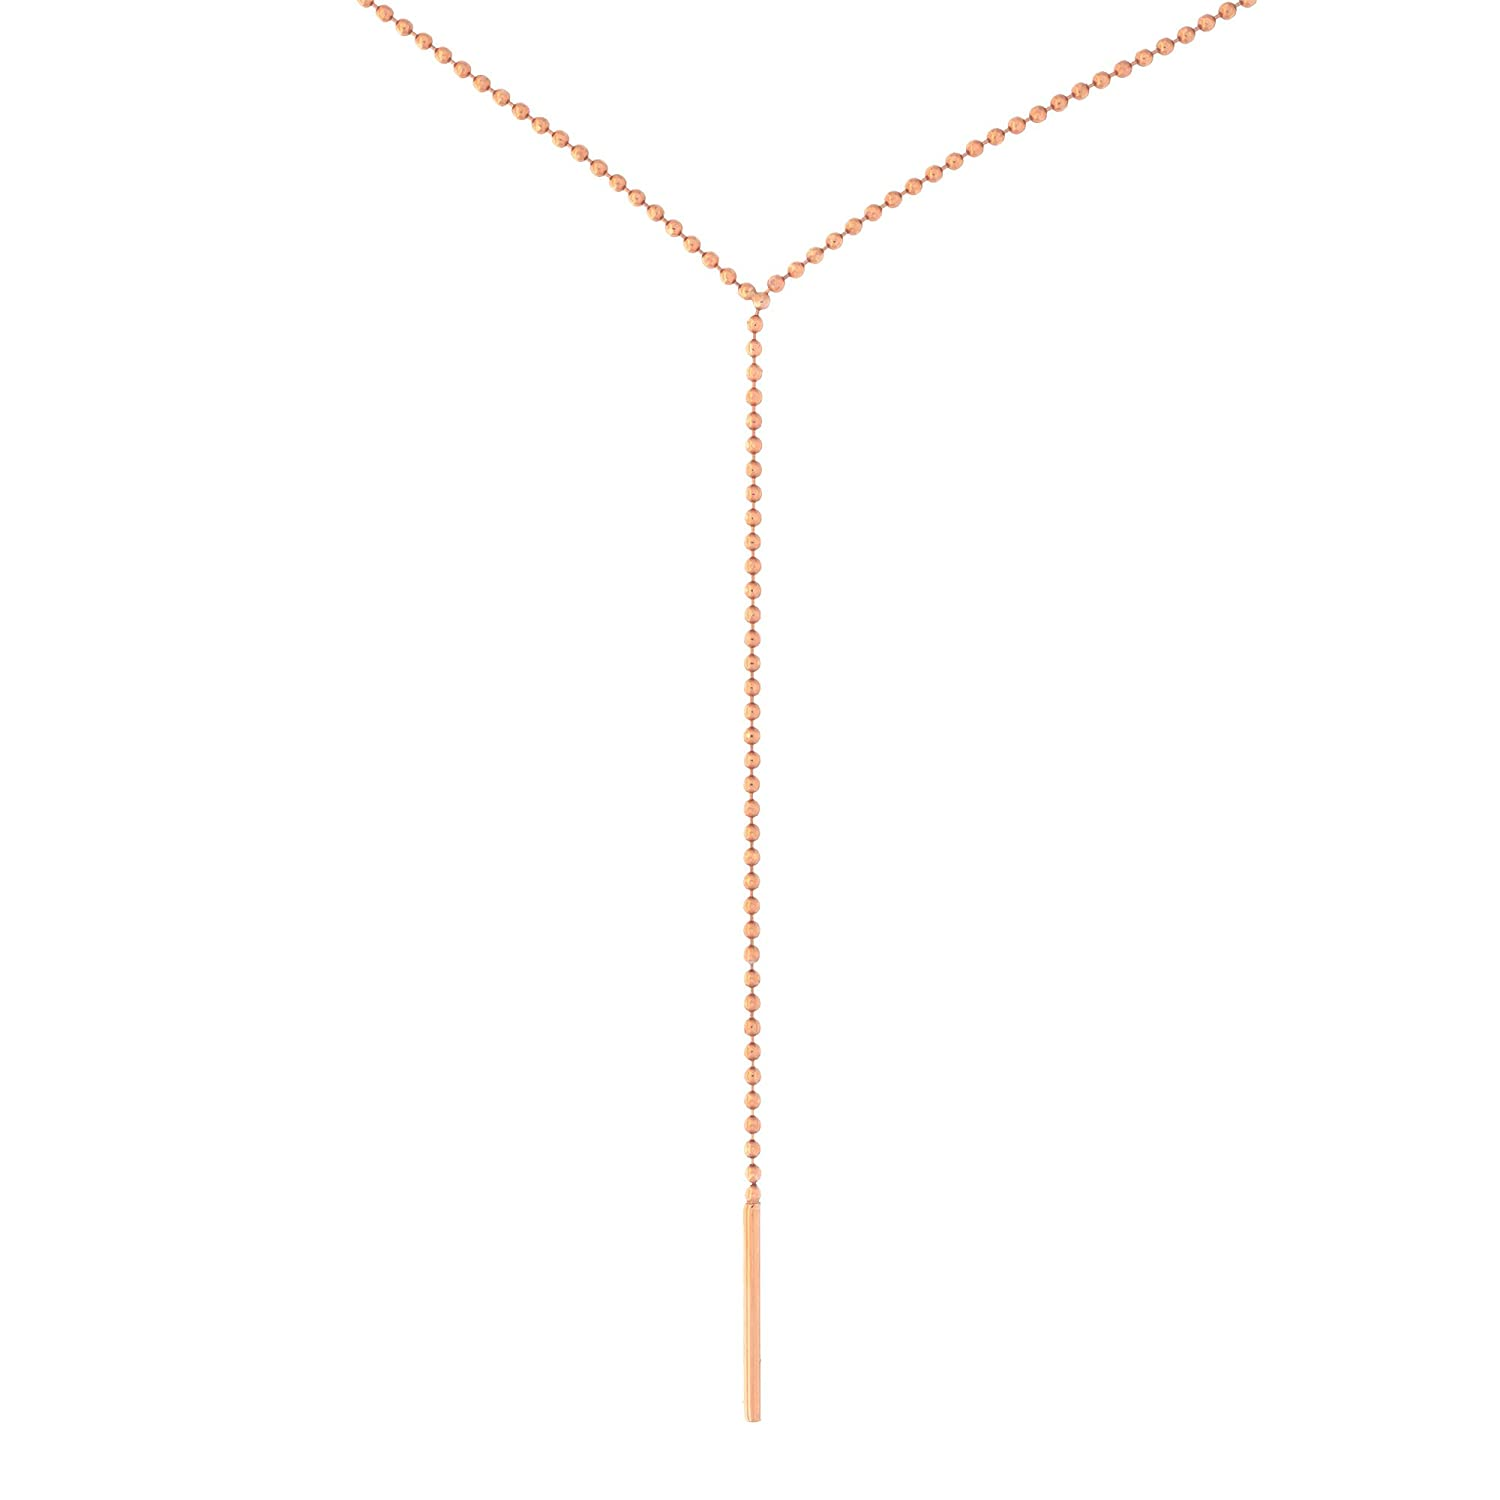 Automic Gold Solid 14k Yellow White or Rose Gold Lariat Necklace 18